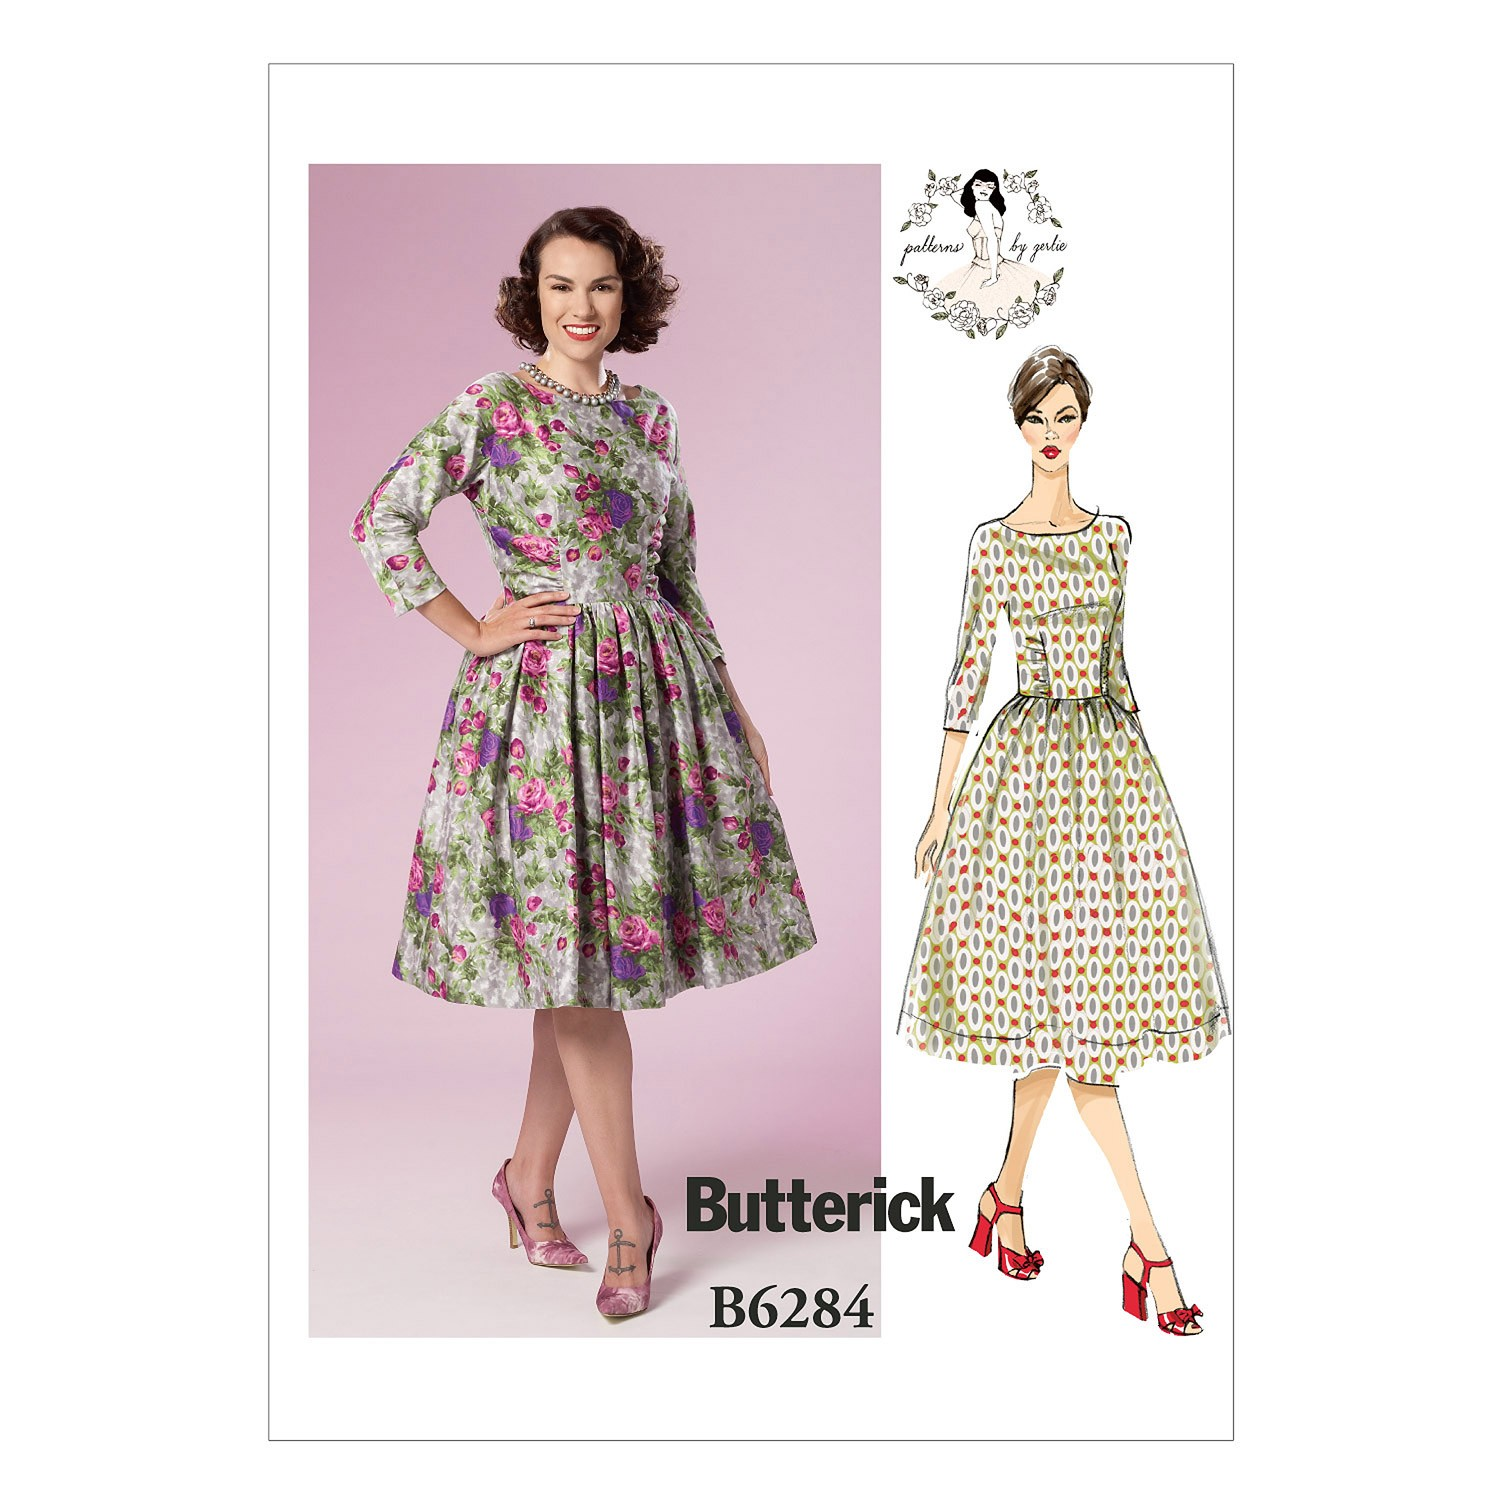 Butterick Sewing Pattern 6284 Misses' Vintage Style Dress Flaired Skirt